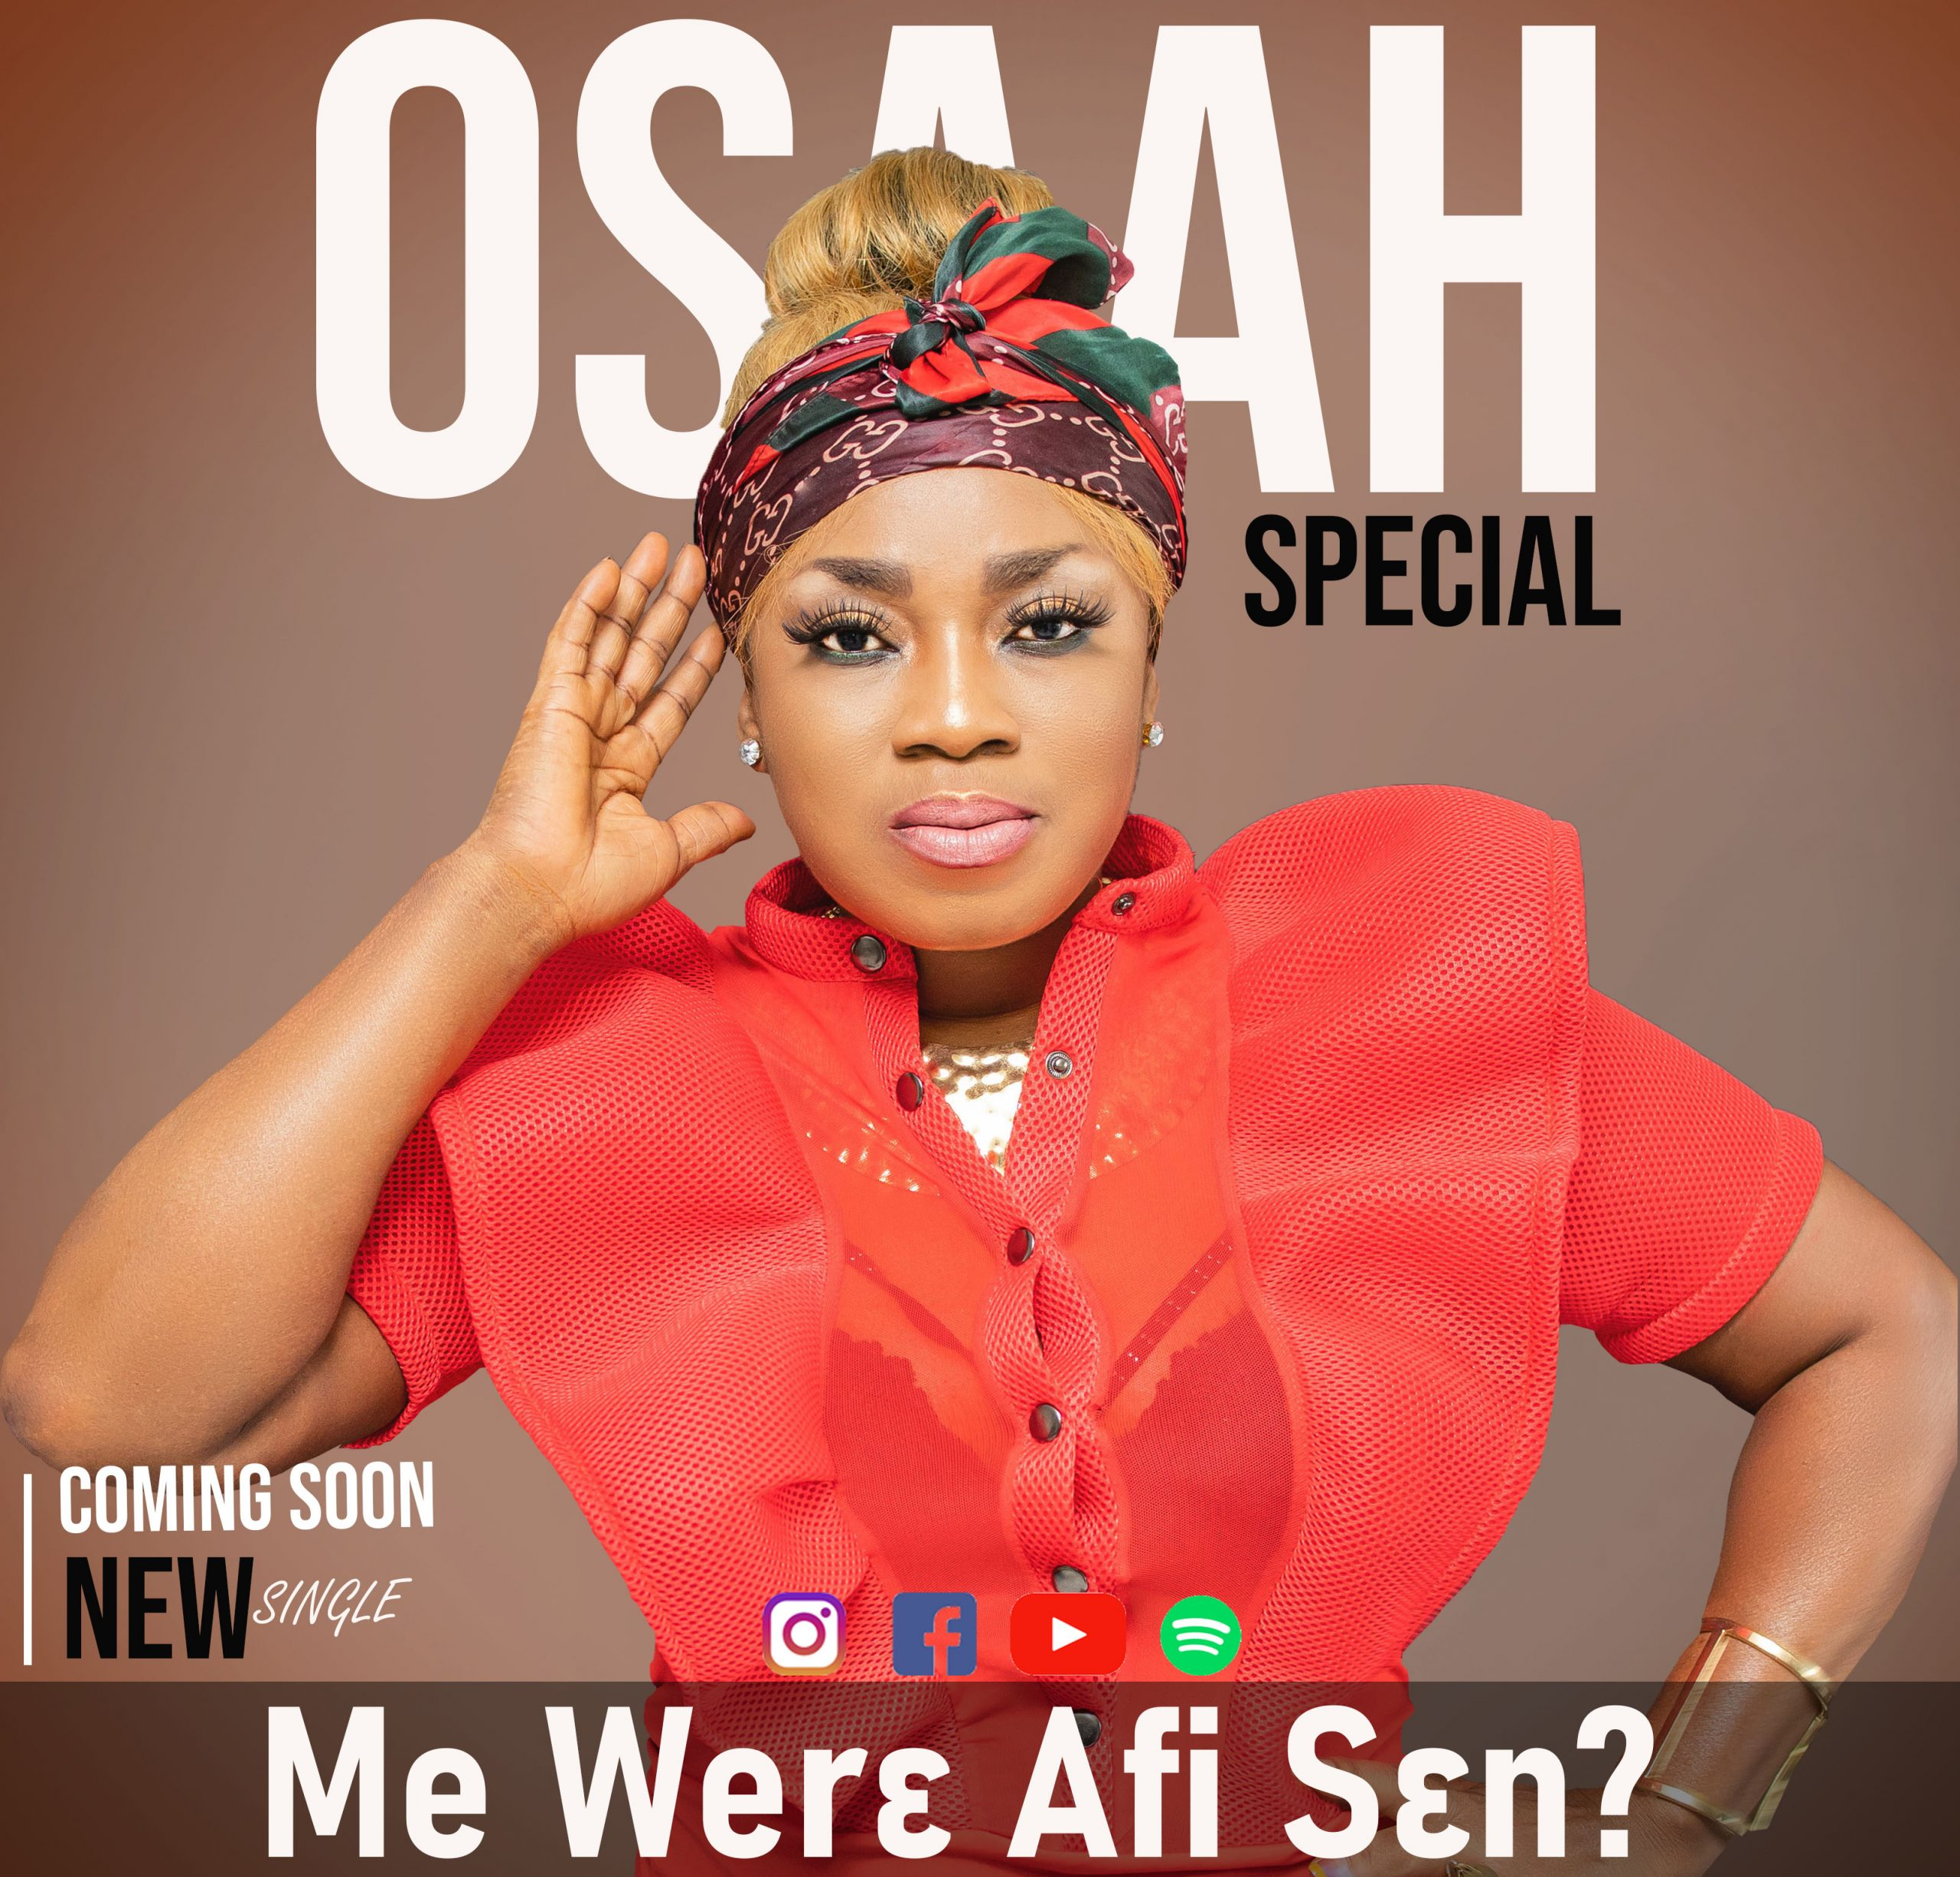 Osaah Special Set To Shake Ghana With A New Mind Blowing Song